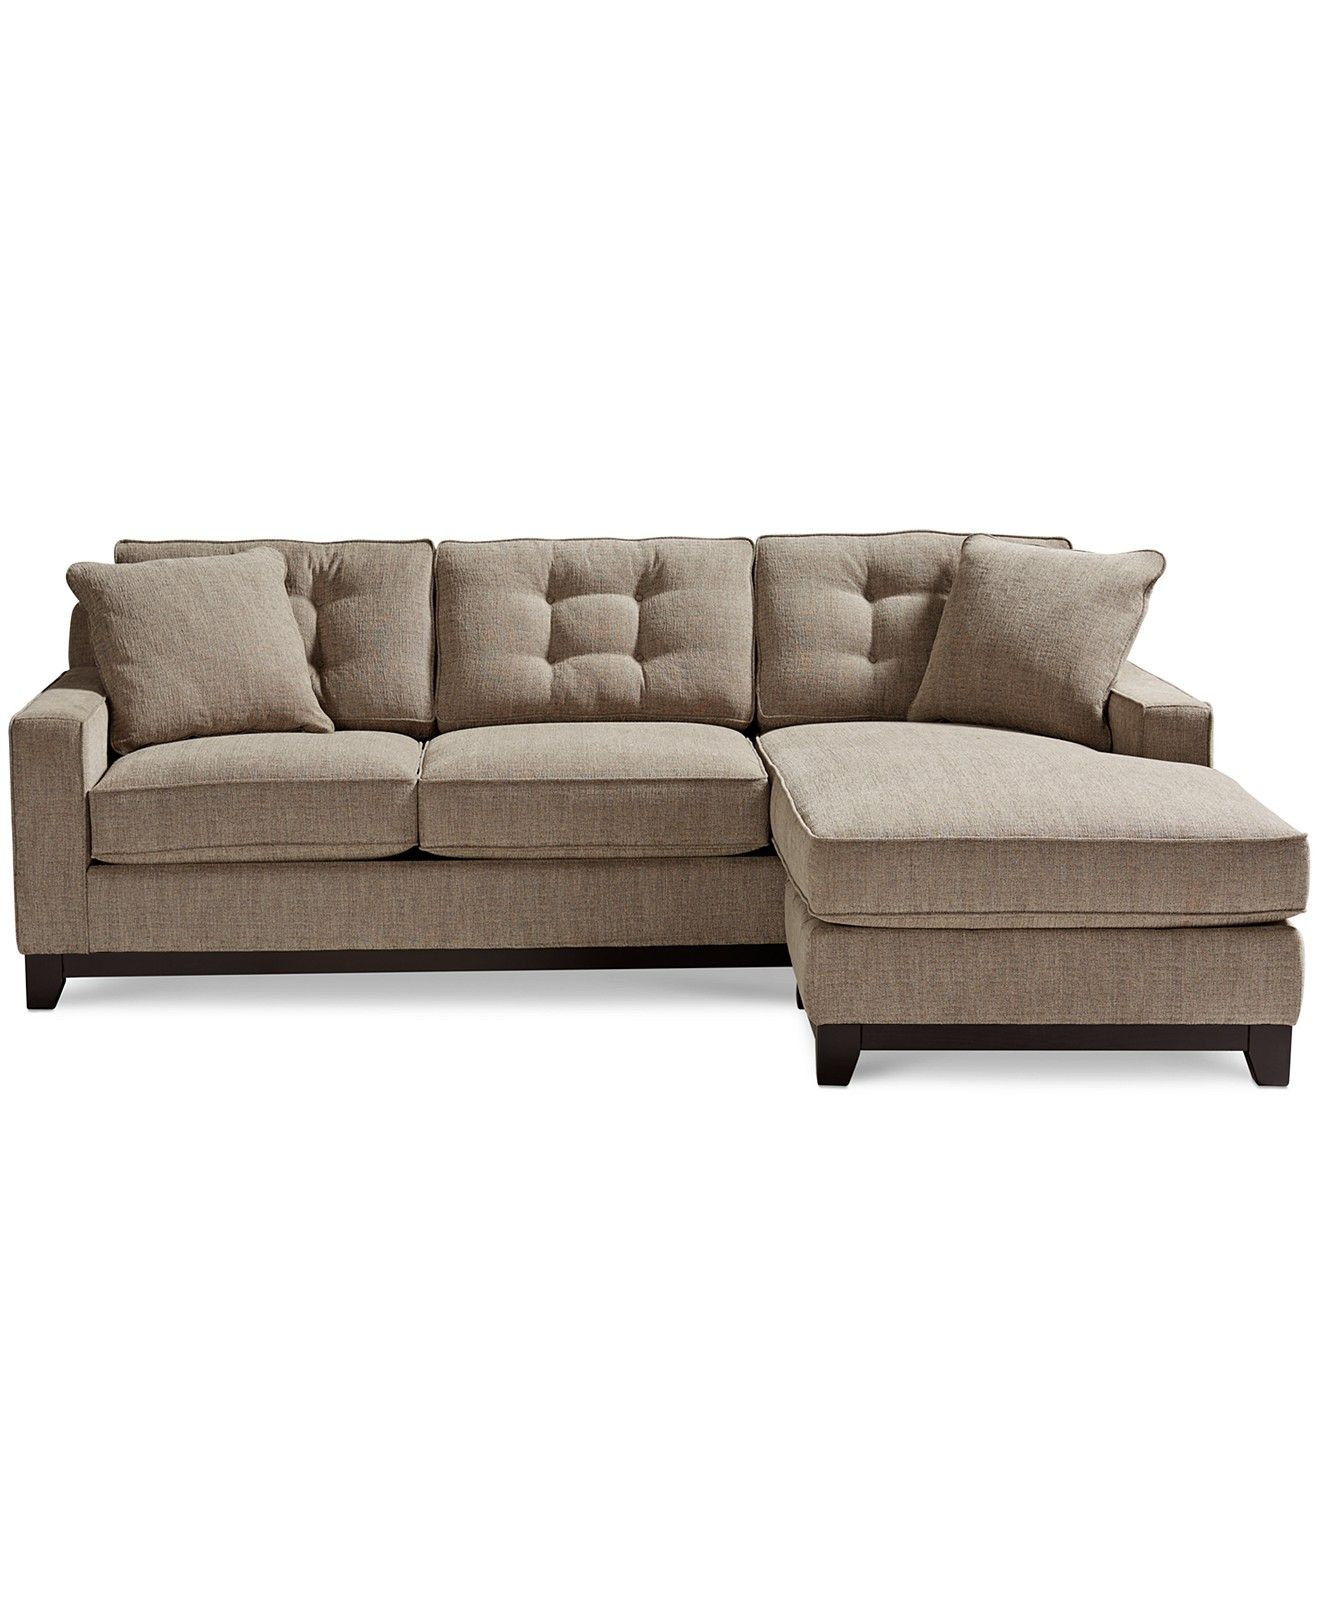 Awesome Pull Out Sectional Sofa Fancy Pull Out Sectional Sofa 71 Office Sofa Ideas With Pull Out Sectional Pull Out Sofa Bed Sofa Bed Design Hide A Bed Couch